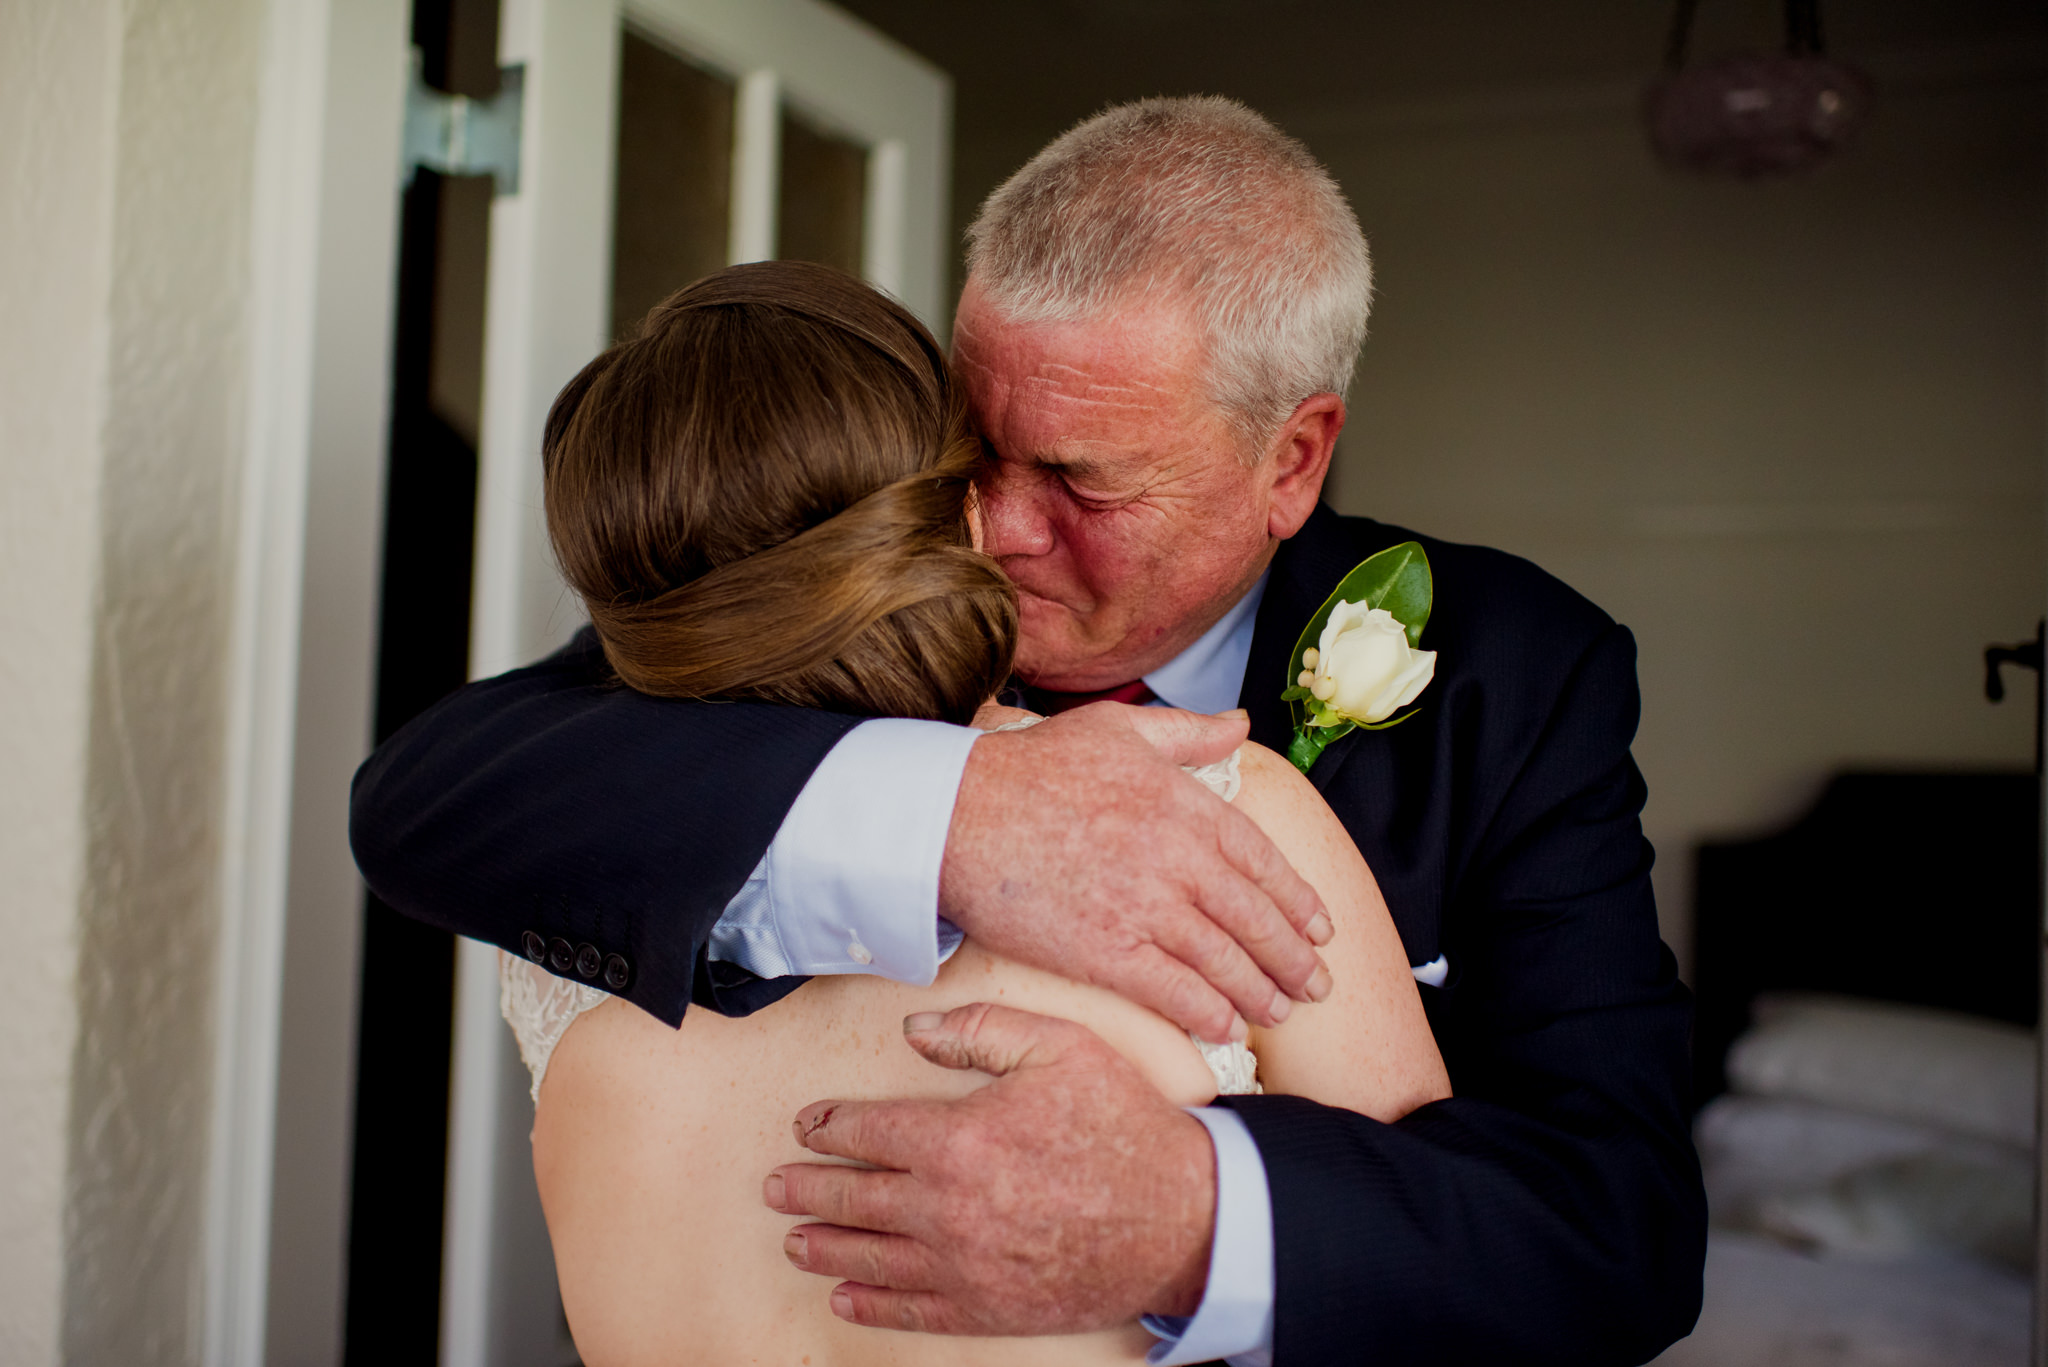 A father cries as he hugs his daughter in her wedding dress